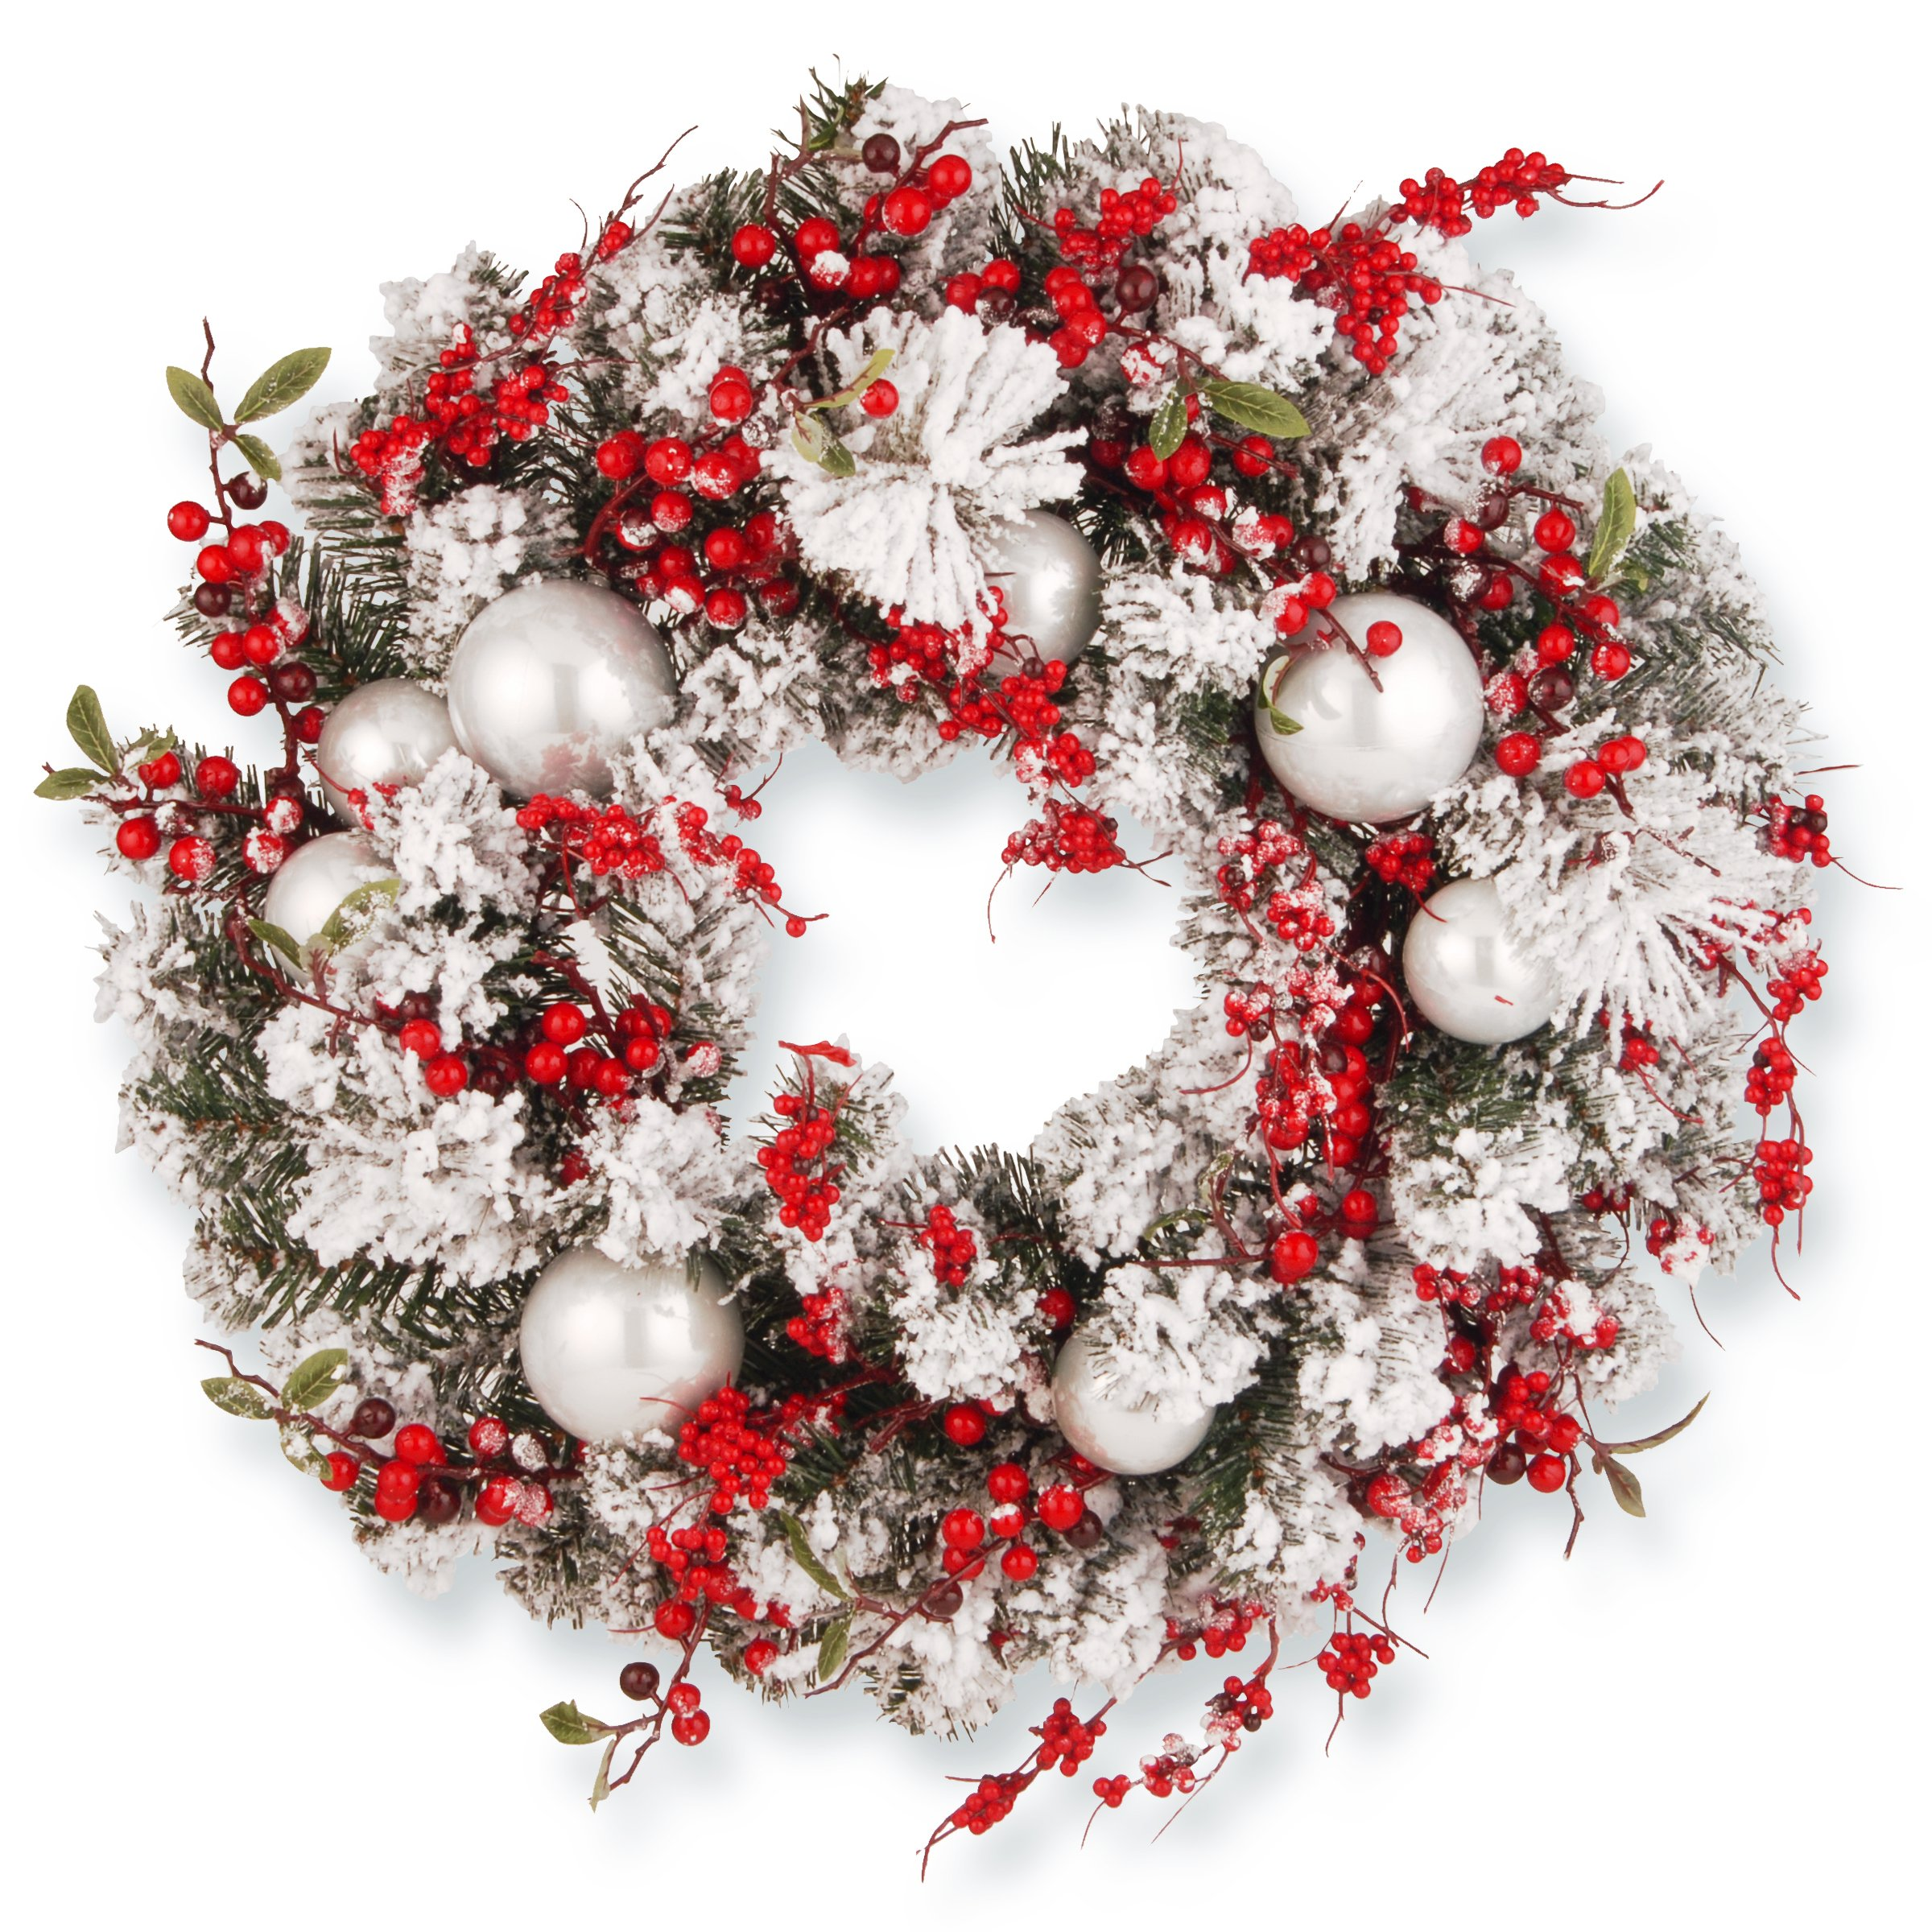 National Tree 24 Inch Christmas Wreath with Red and White Ornaments (RAC-J501X24)